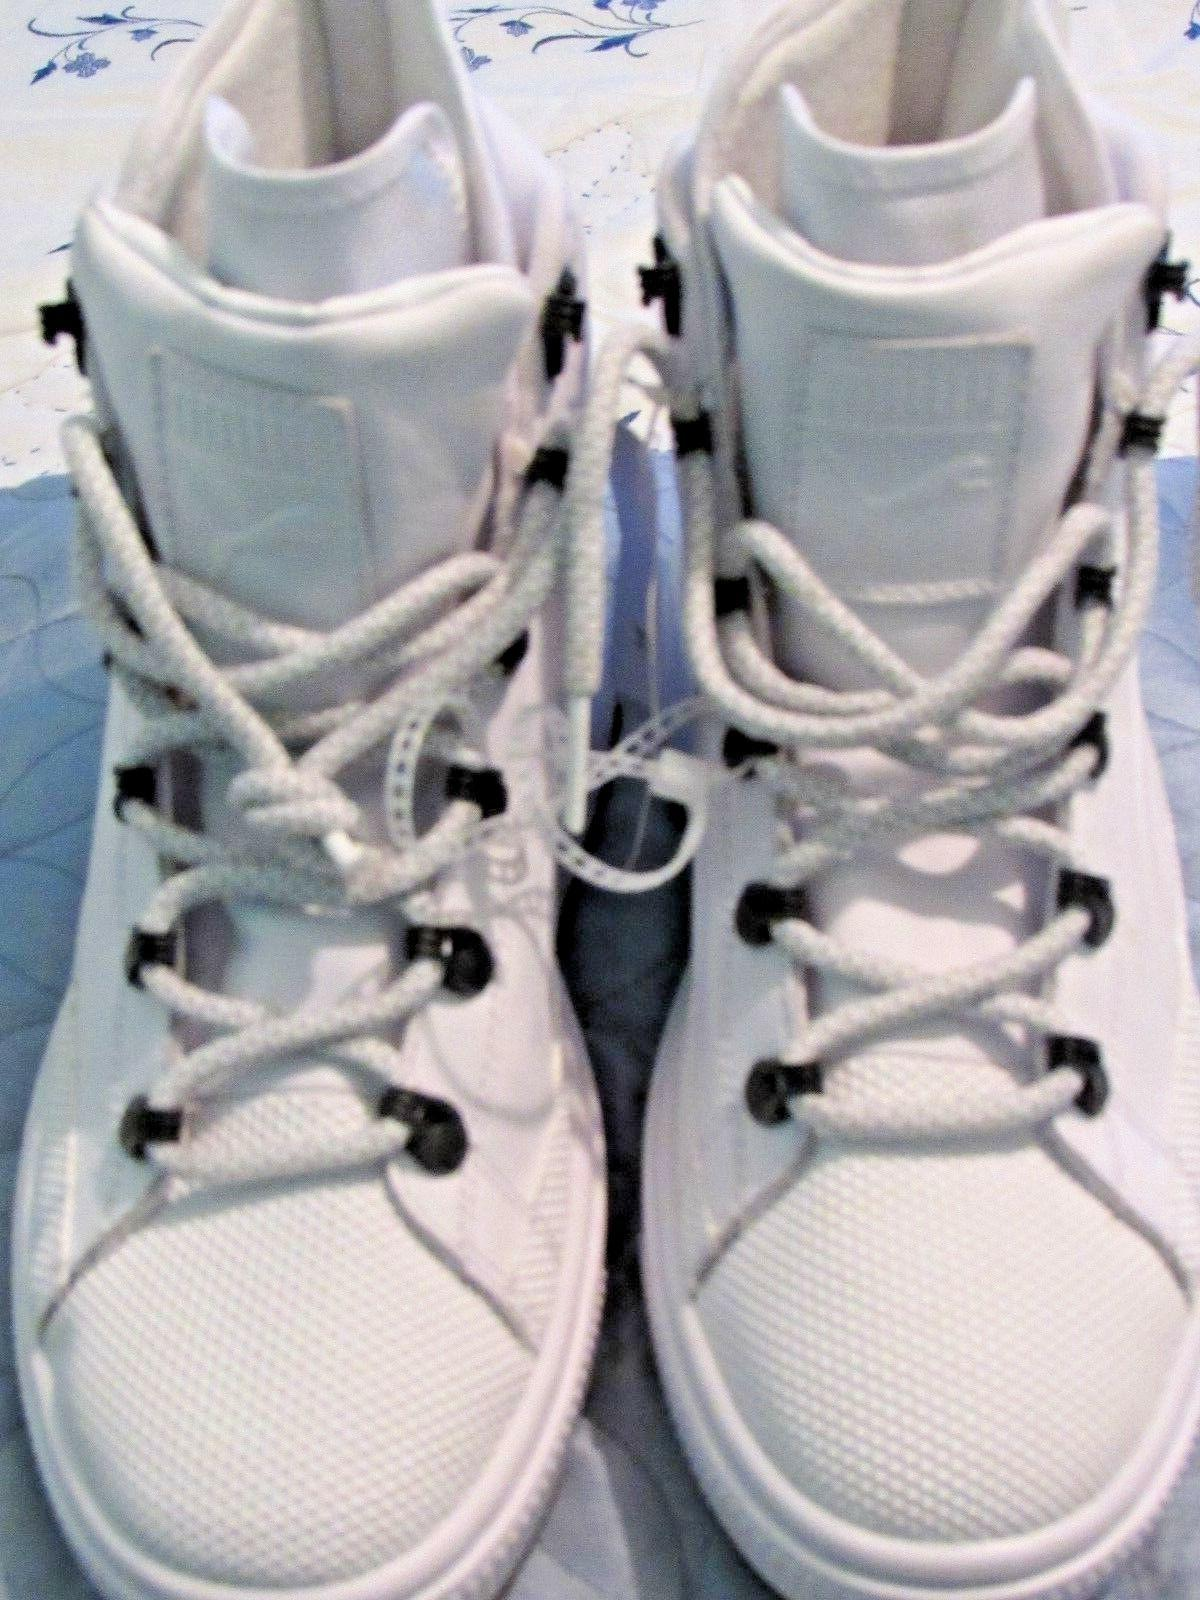 boys white high top leather tennis shoes